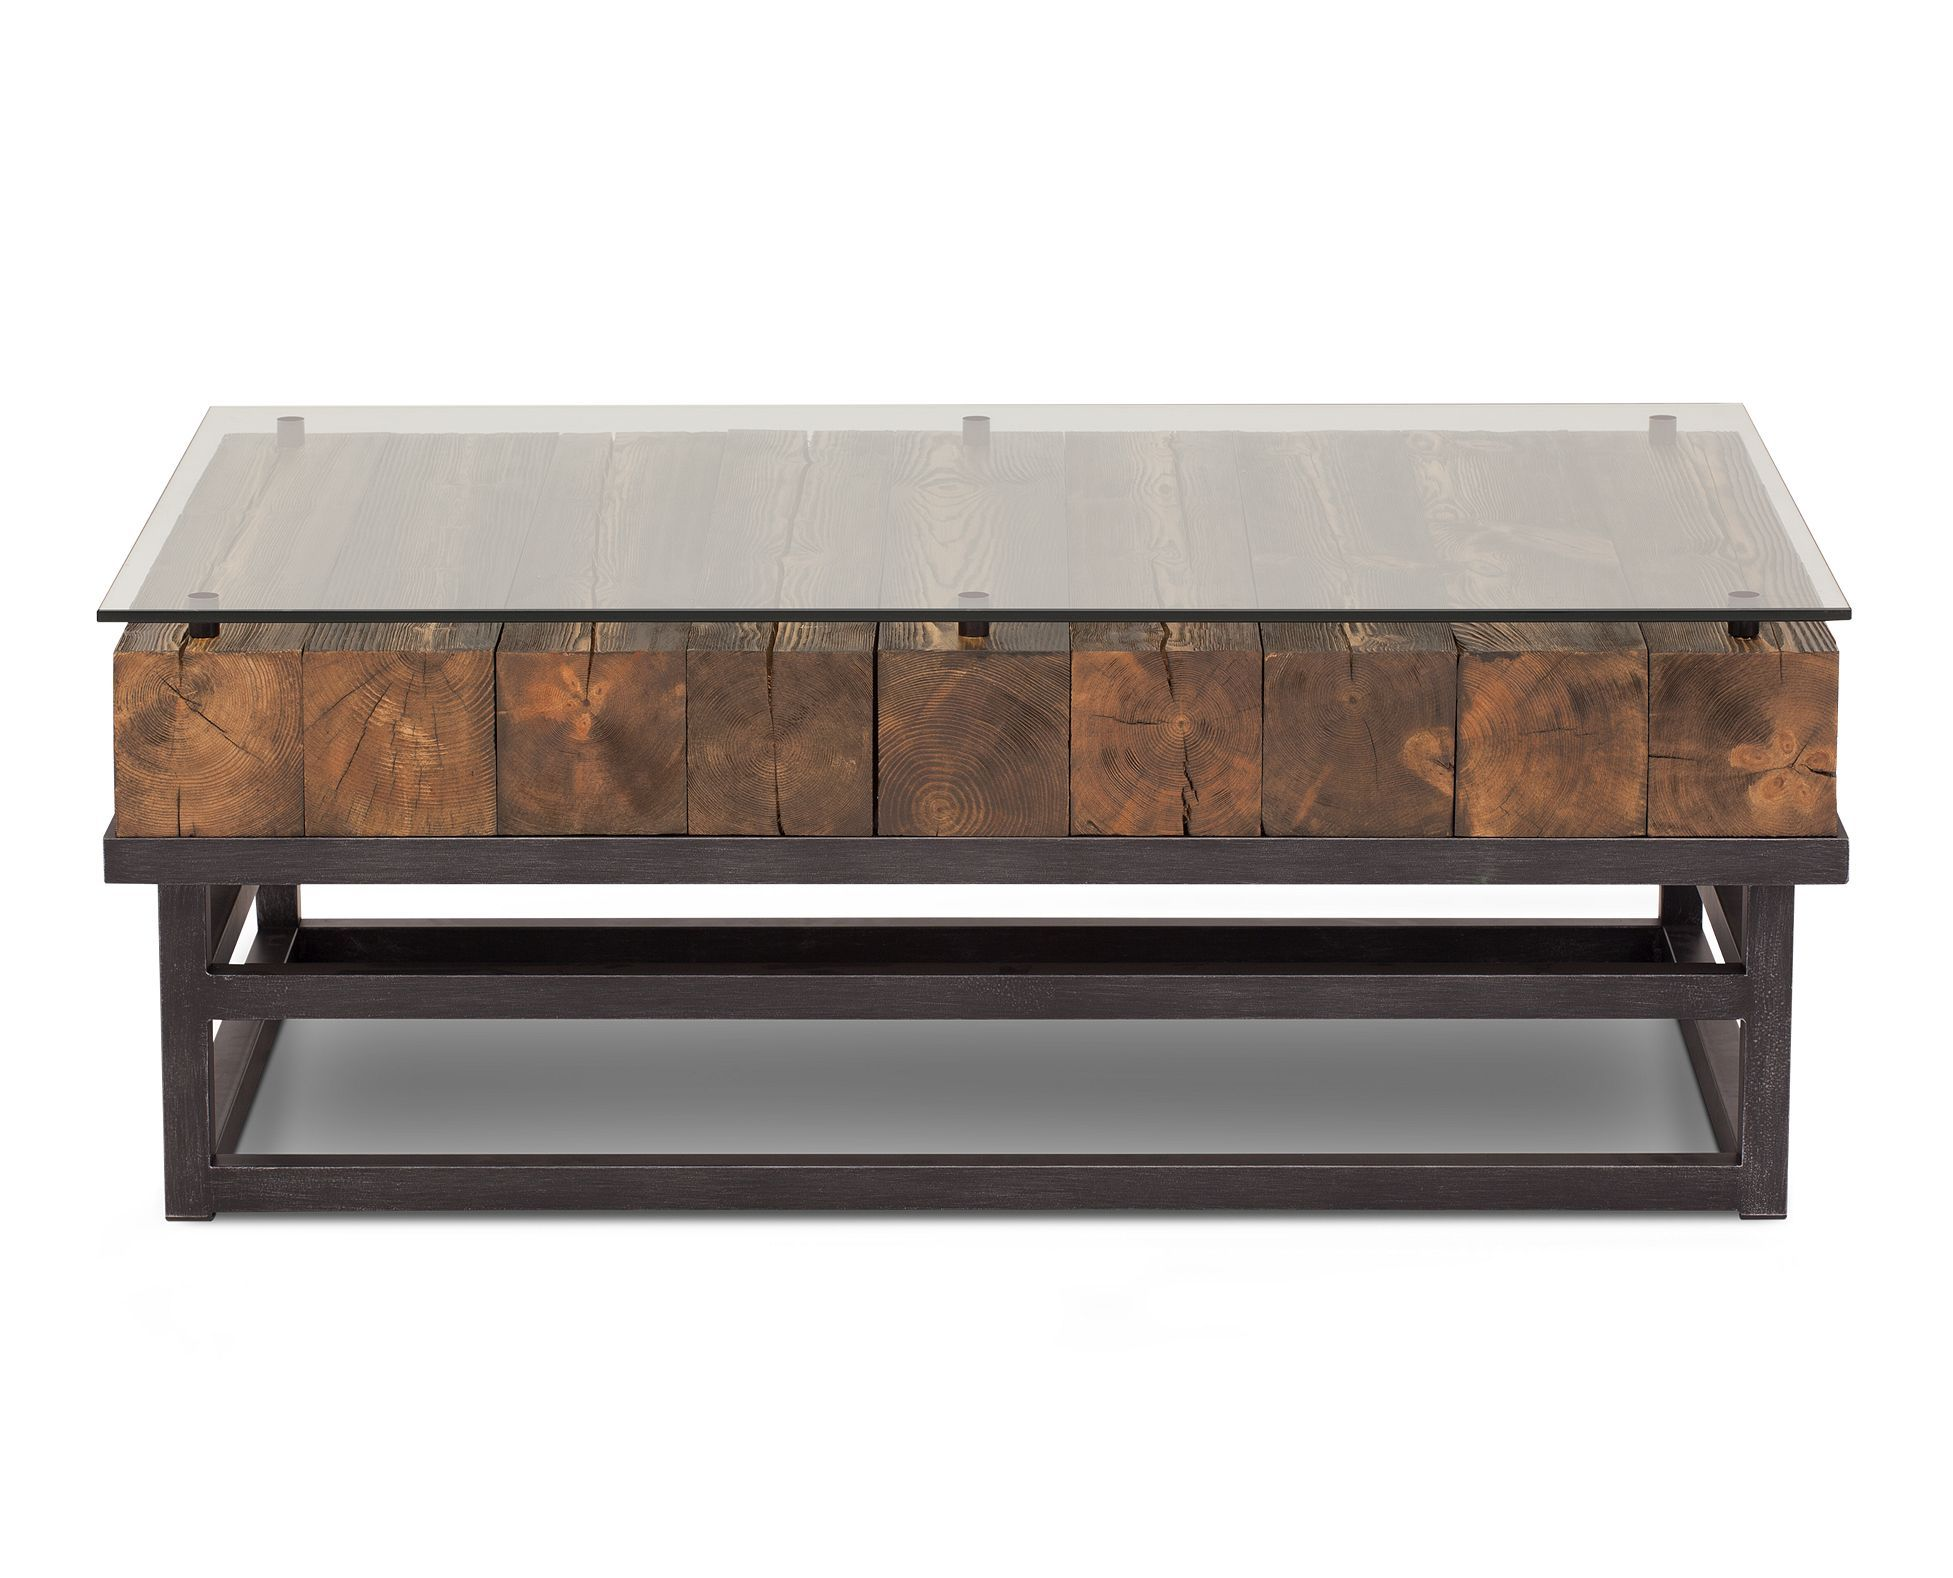 Rustic Yet Sophisticated The Lost City Coffee Table Features Solid Pine Timbers Combined With Tubular Steel And Classic Rowe Furniture Coffee Table Furniture [ 1578 x 1953 Pixel ]